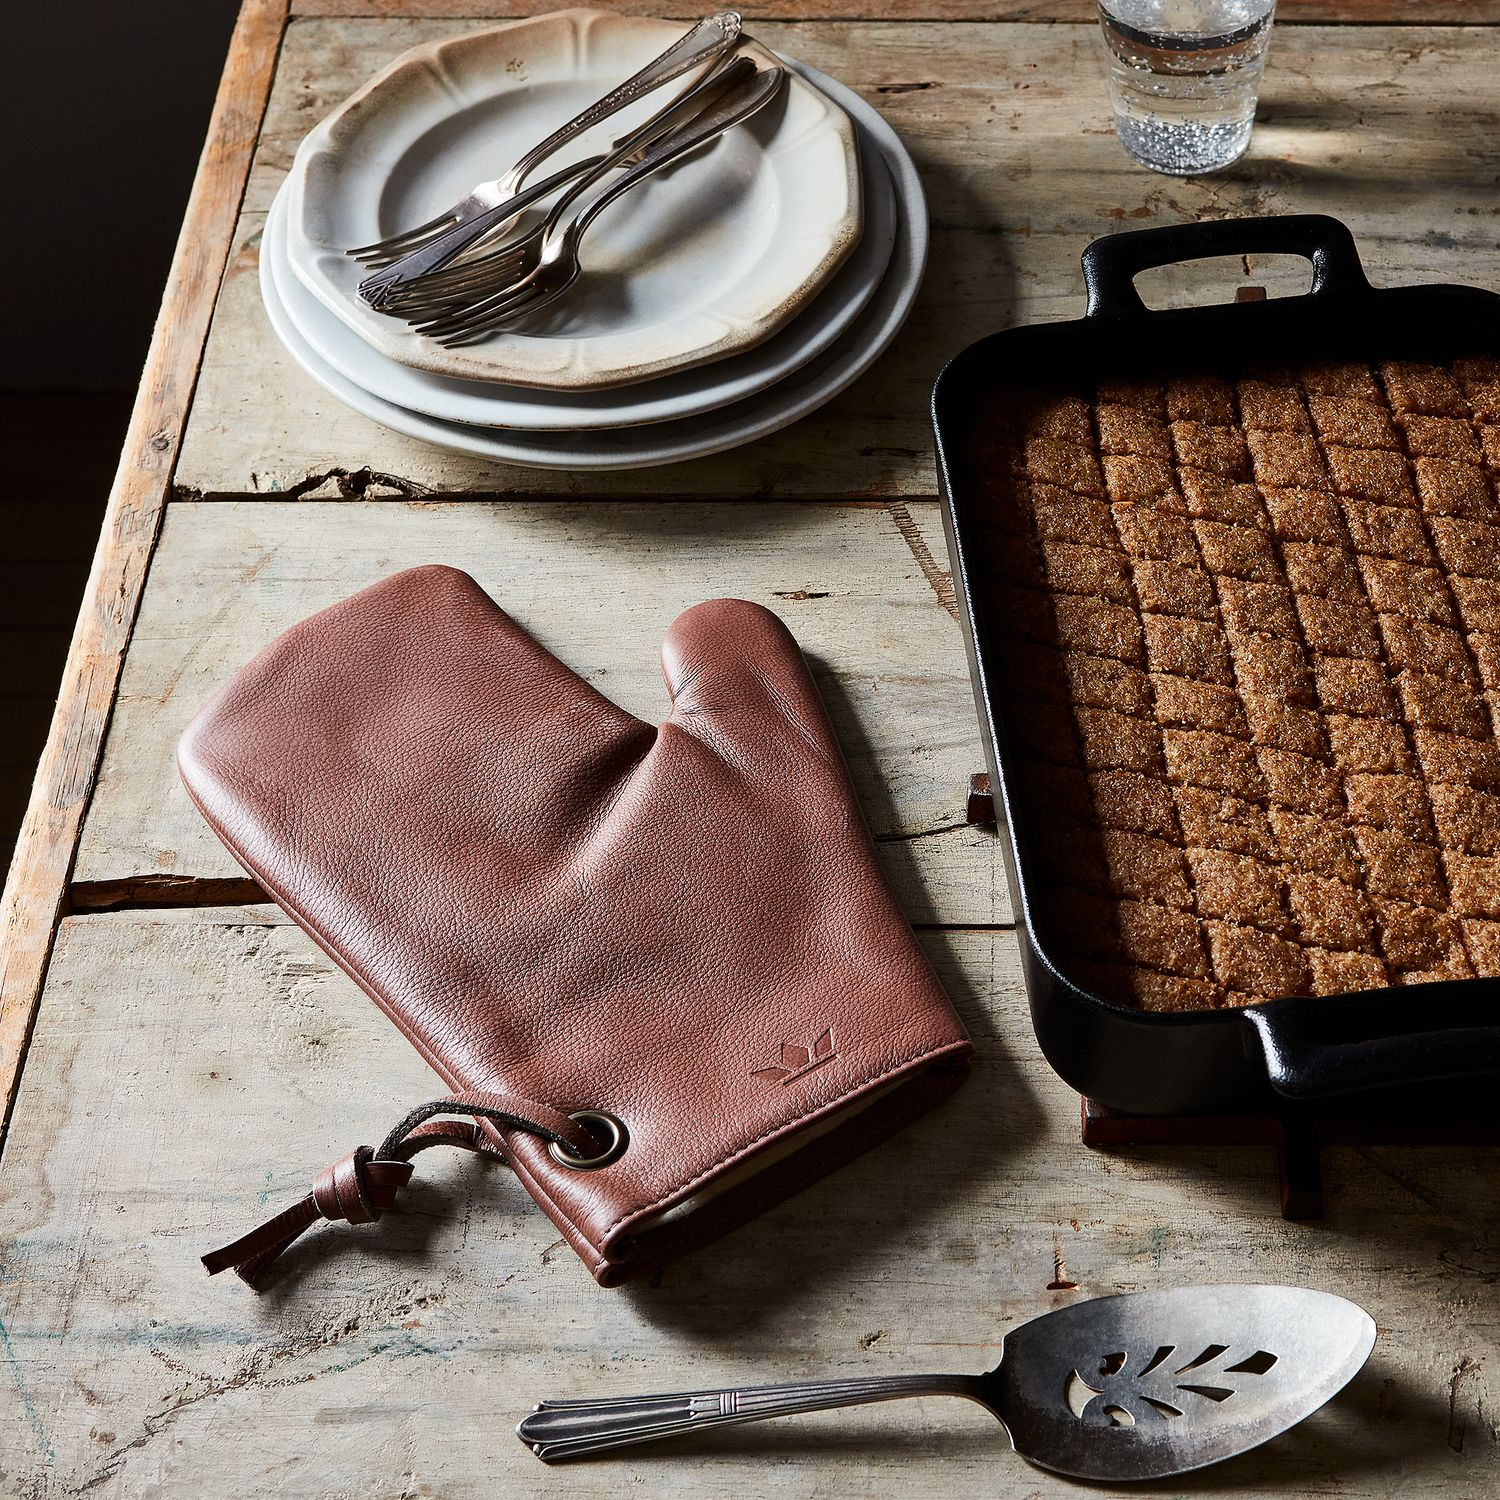 Dutch Leather Oven Mitt On Food52